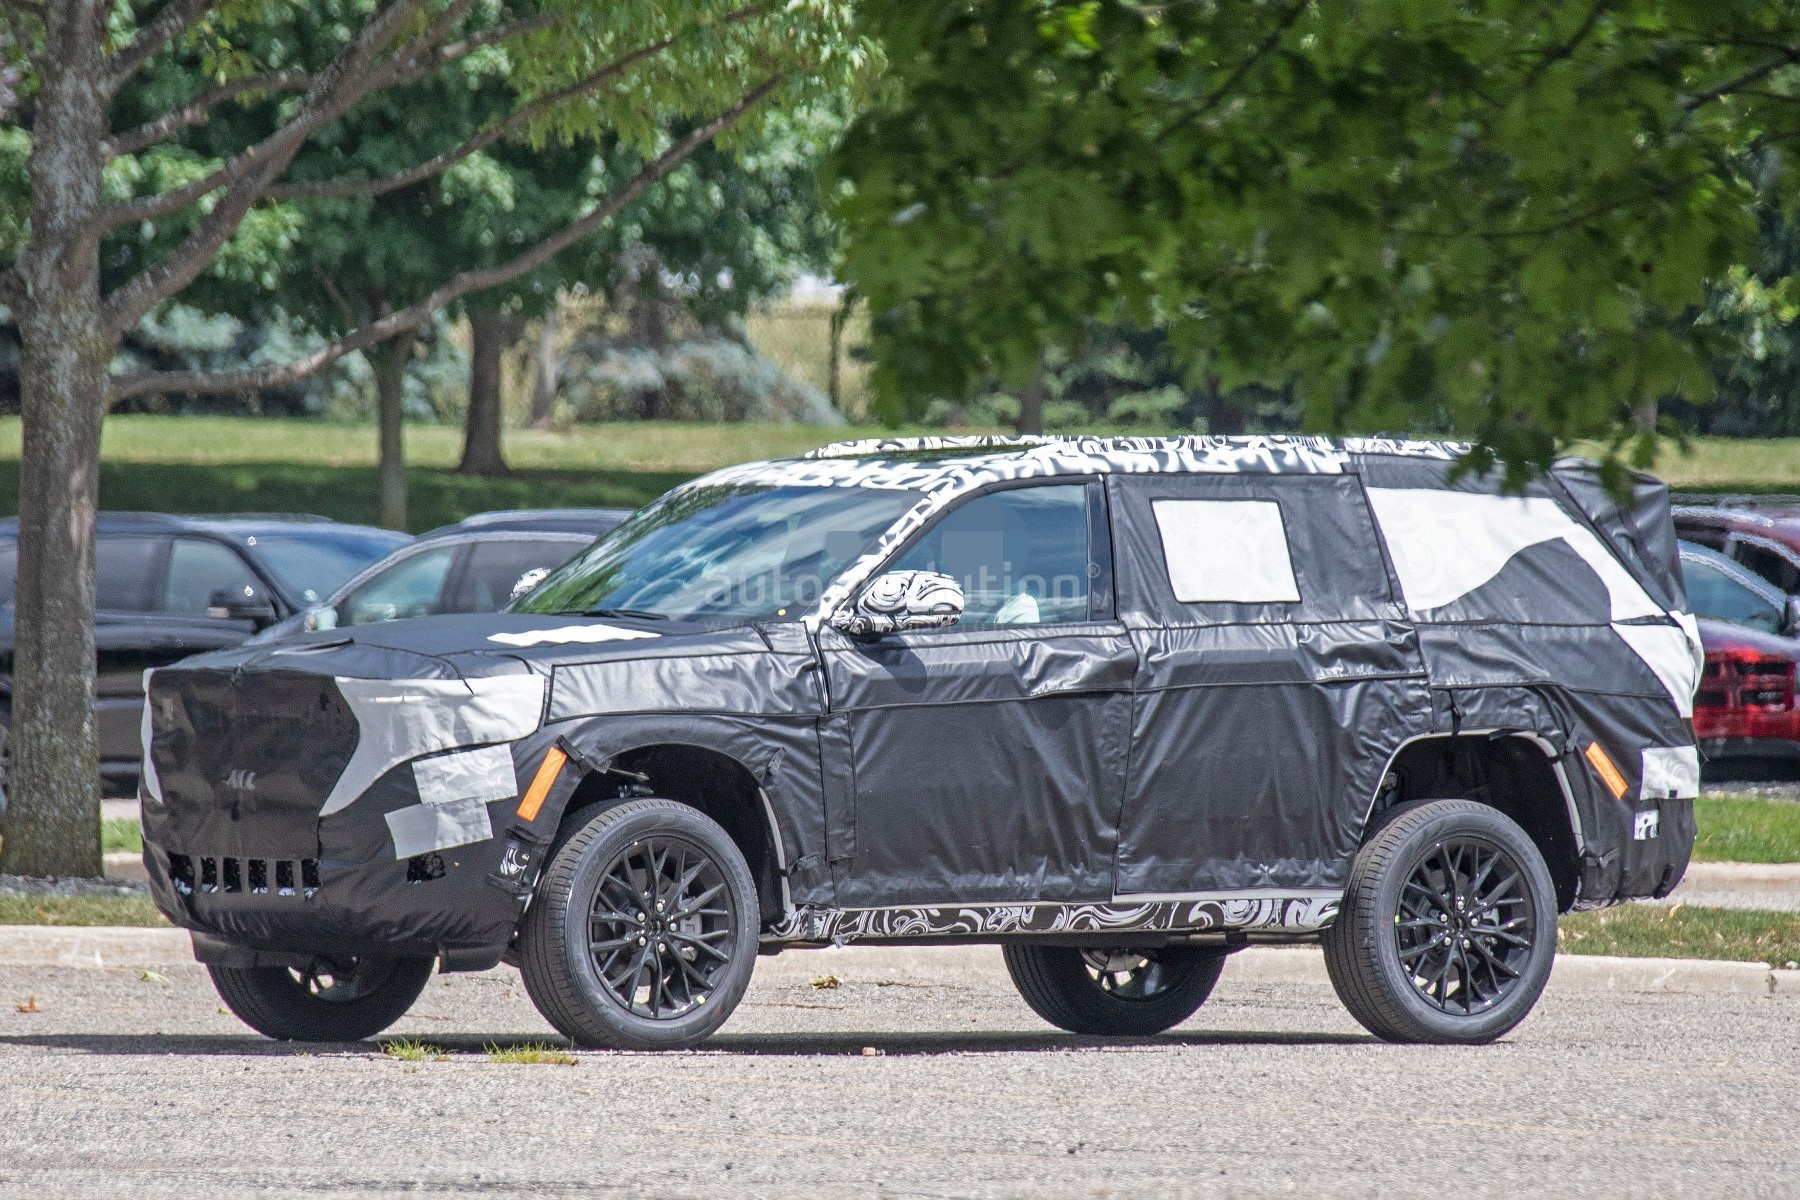 2022 jeep grand cherokee-based large suv spied with air